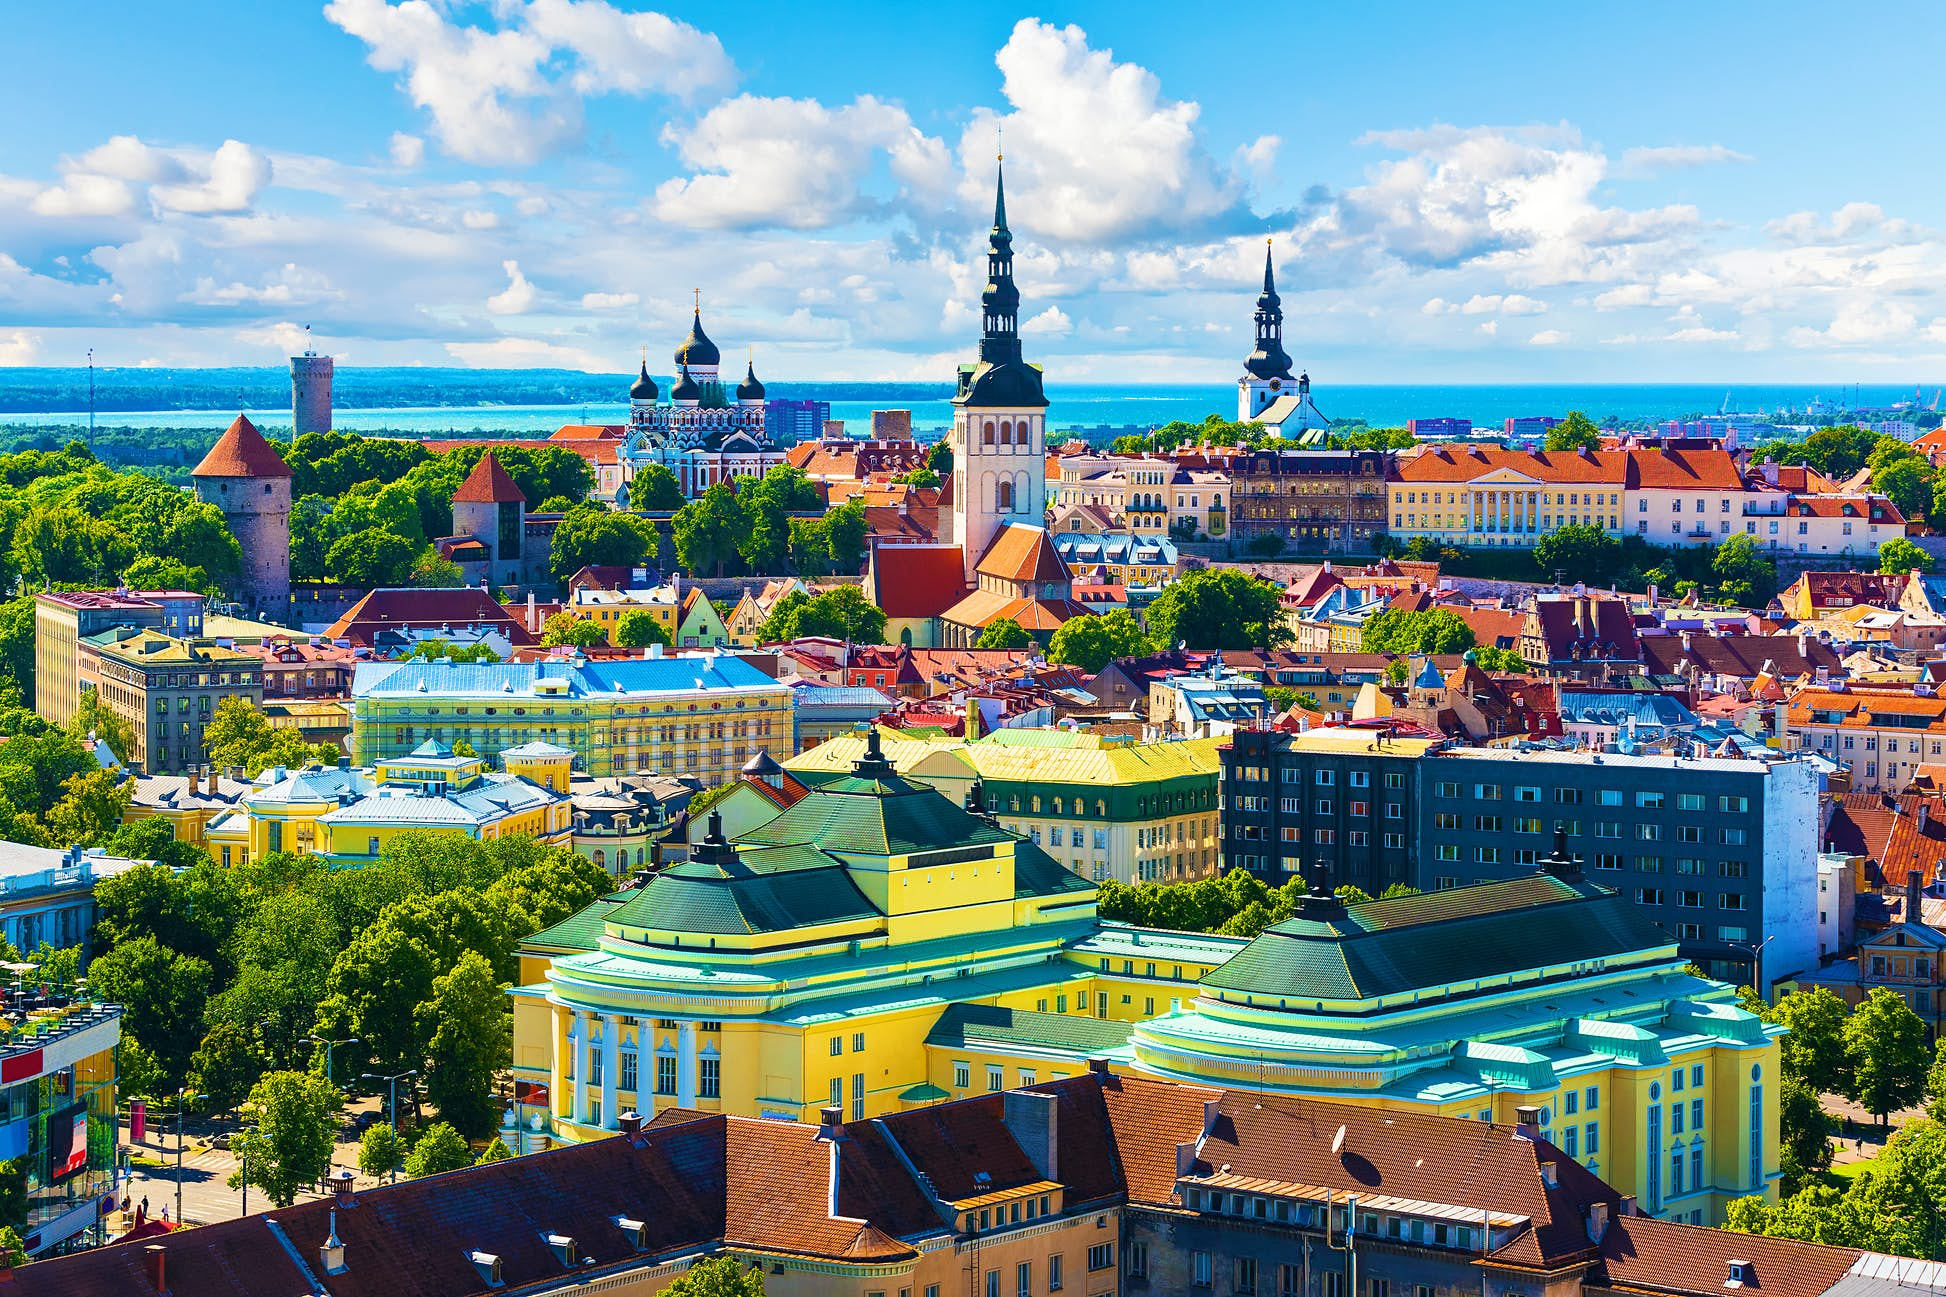 Scenic summer aerial view of the Old Town architecture in Tallinn, Estonia ©Scanrail1/Shutterstock